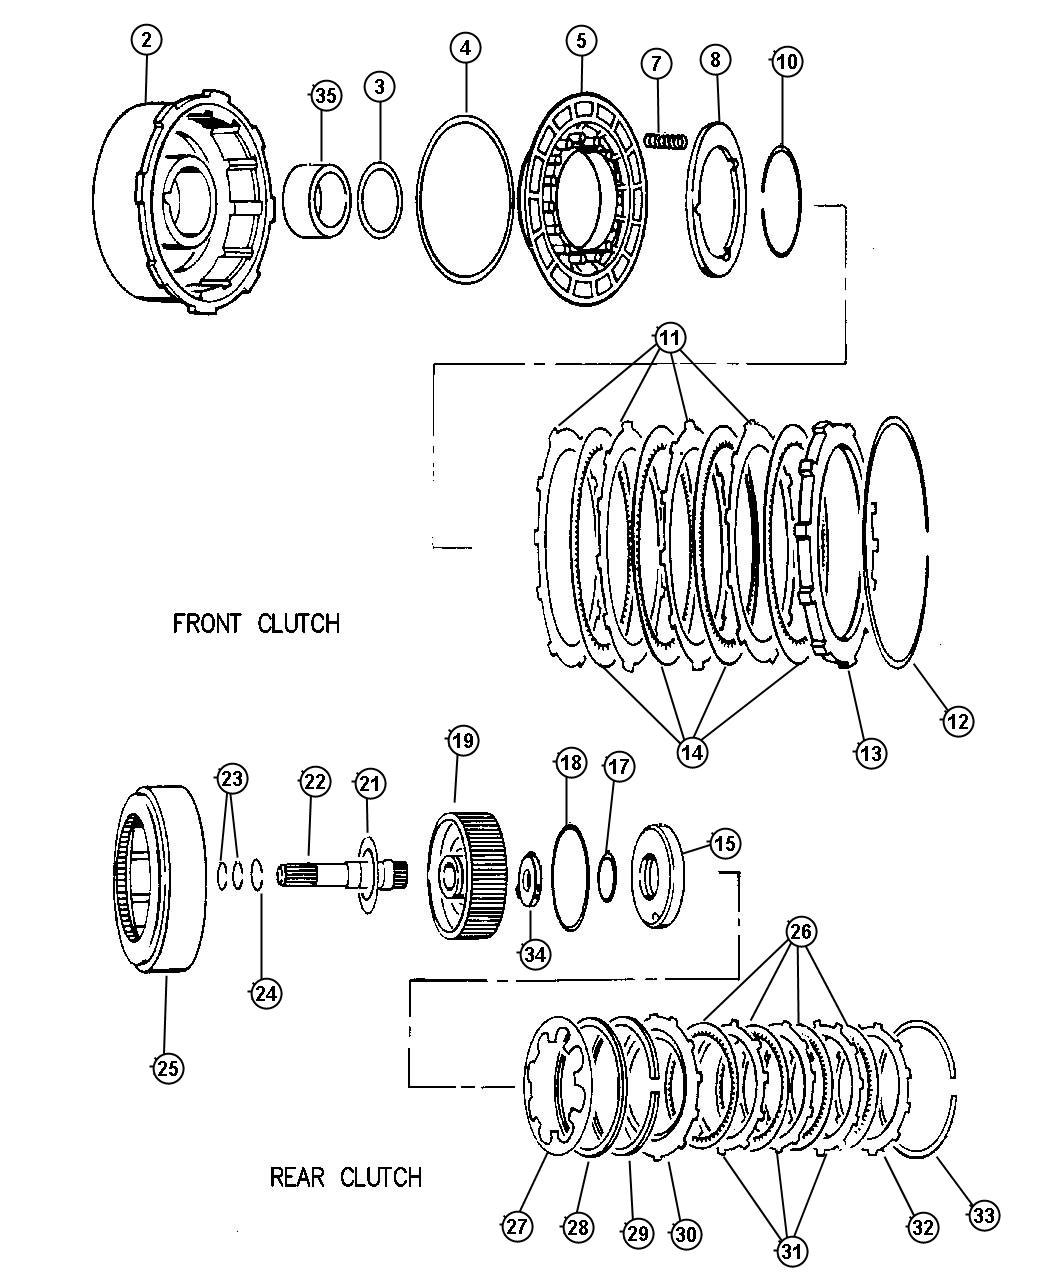 1994 dodge ram 47rh transmission parts diagram  dodge